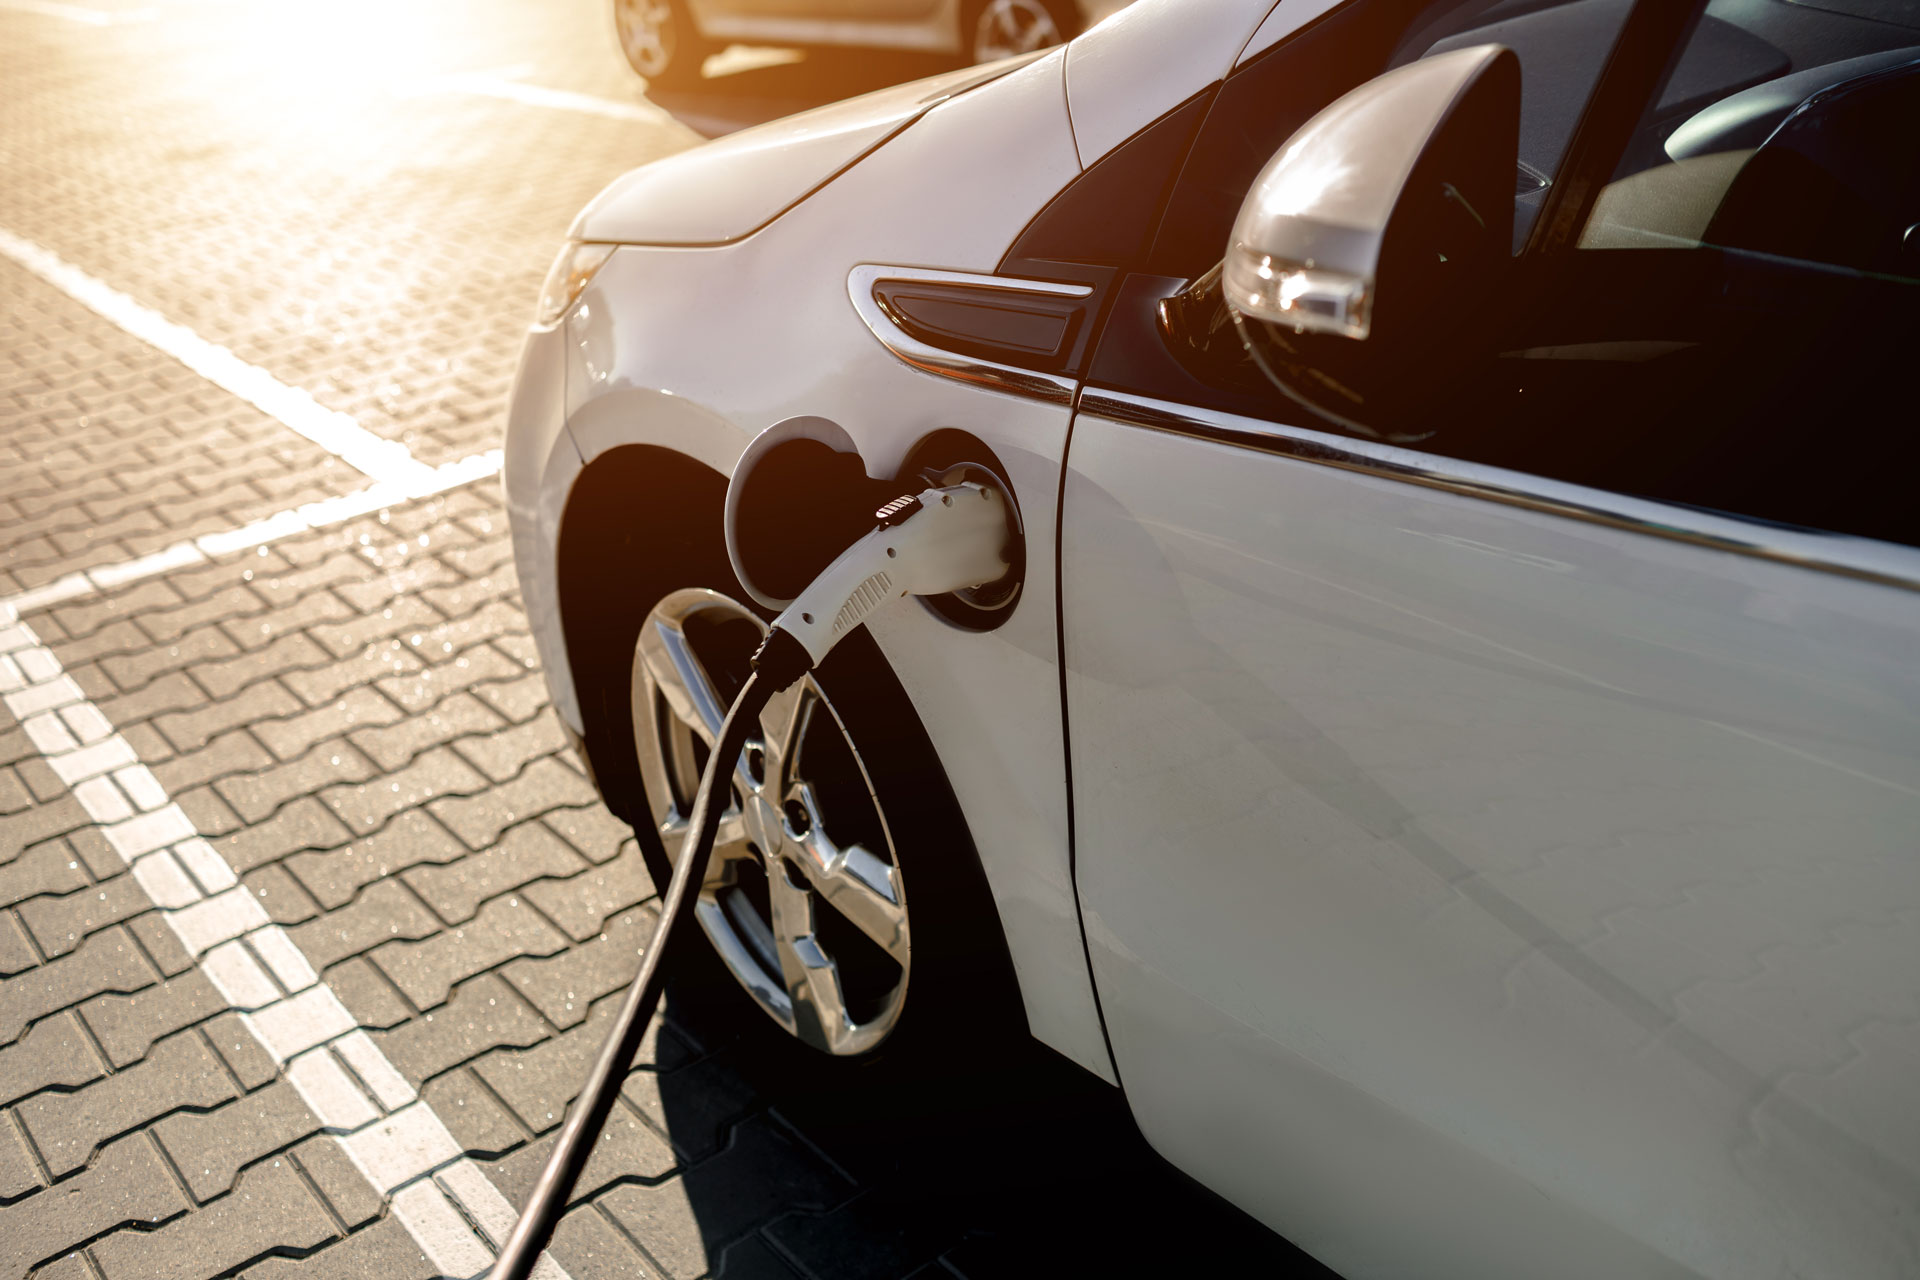 electric-car-charging-station-street_1920x1280